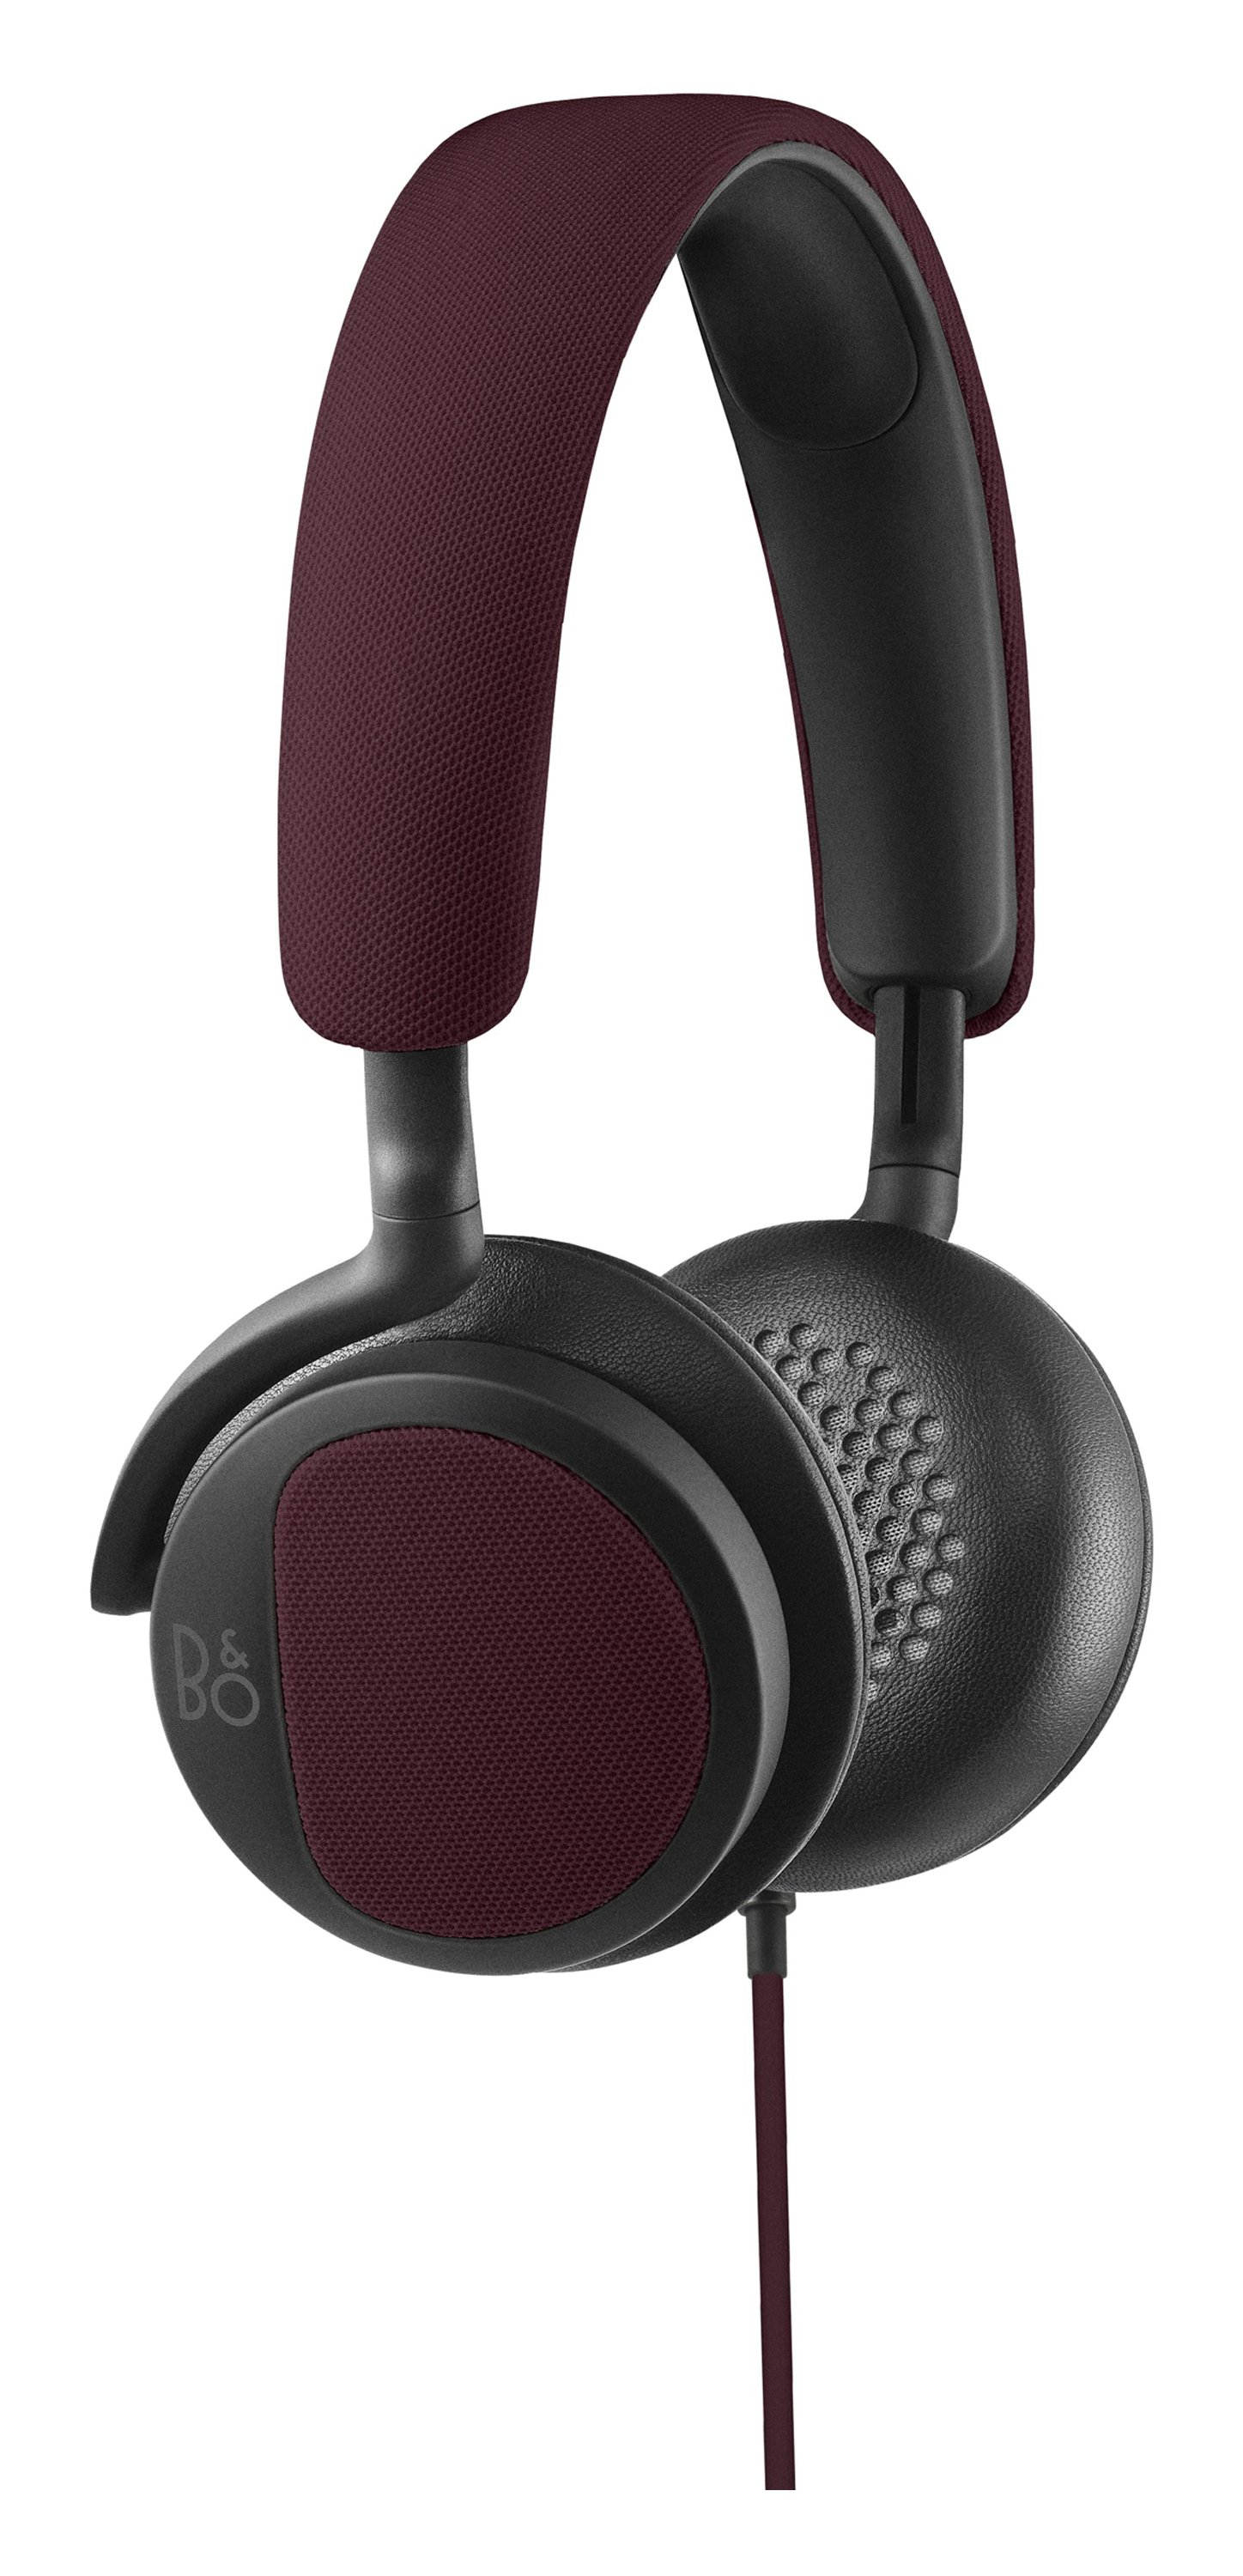 Image of B&O PLAY by Bang & Olufsen H2 Headphones - Deep Red.